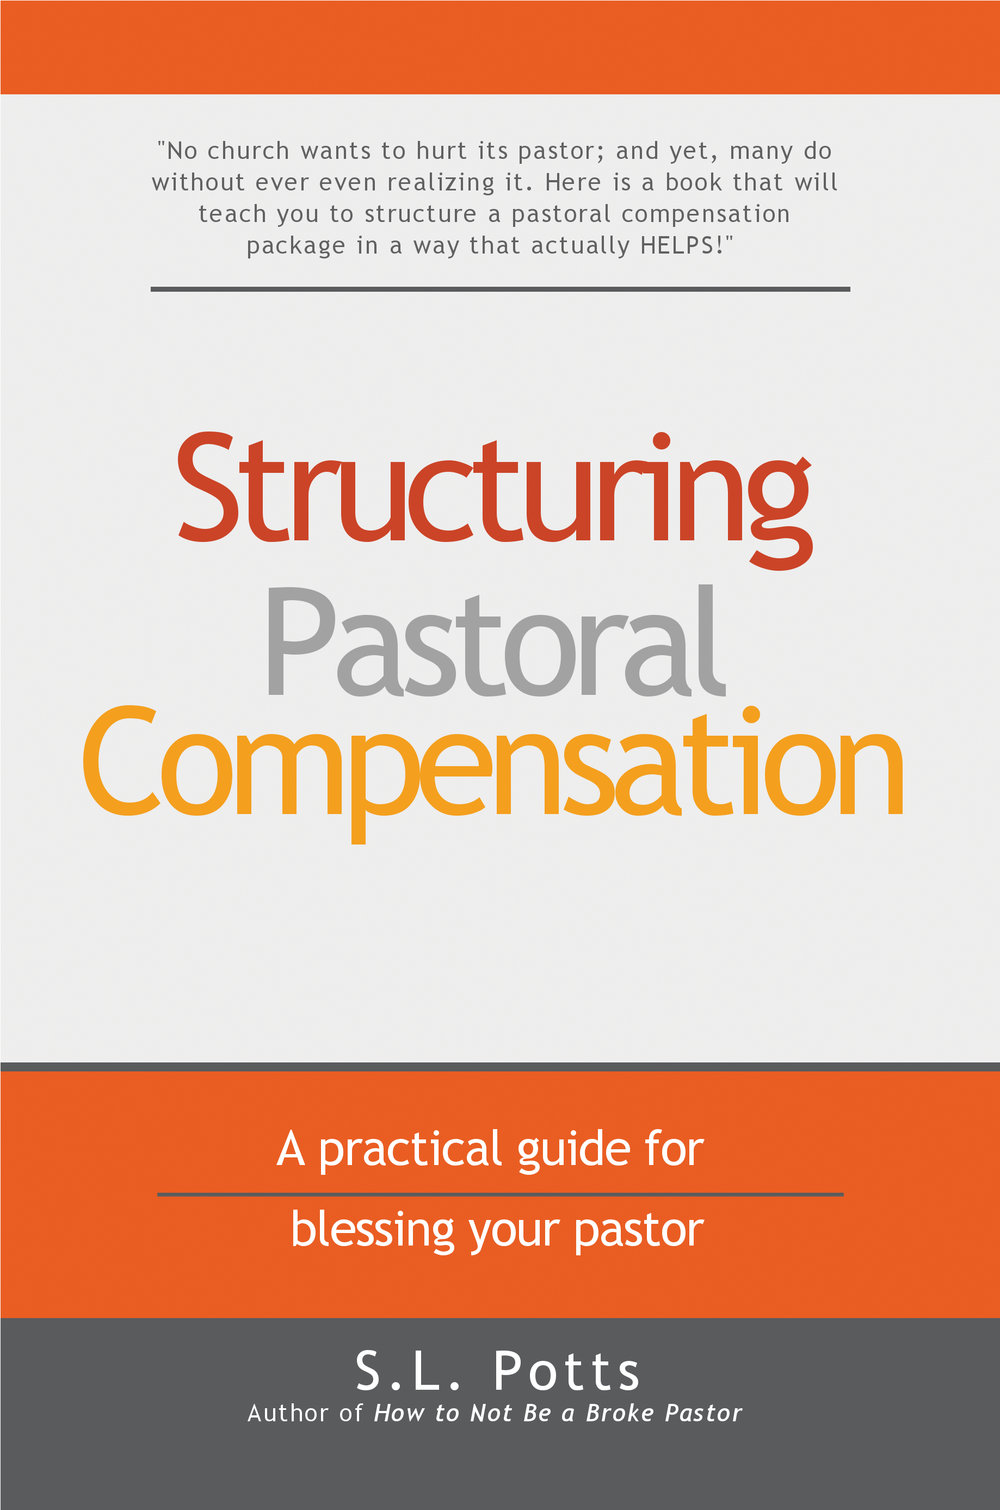 StructuringPastoralCompensationFrontMBED.jpg